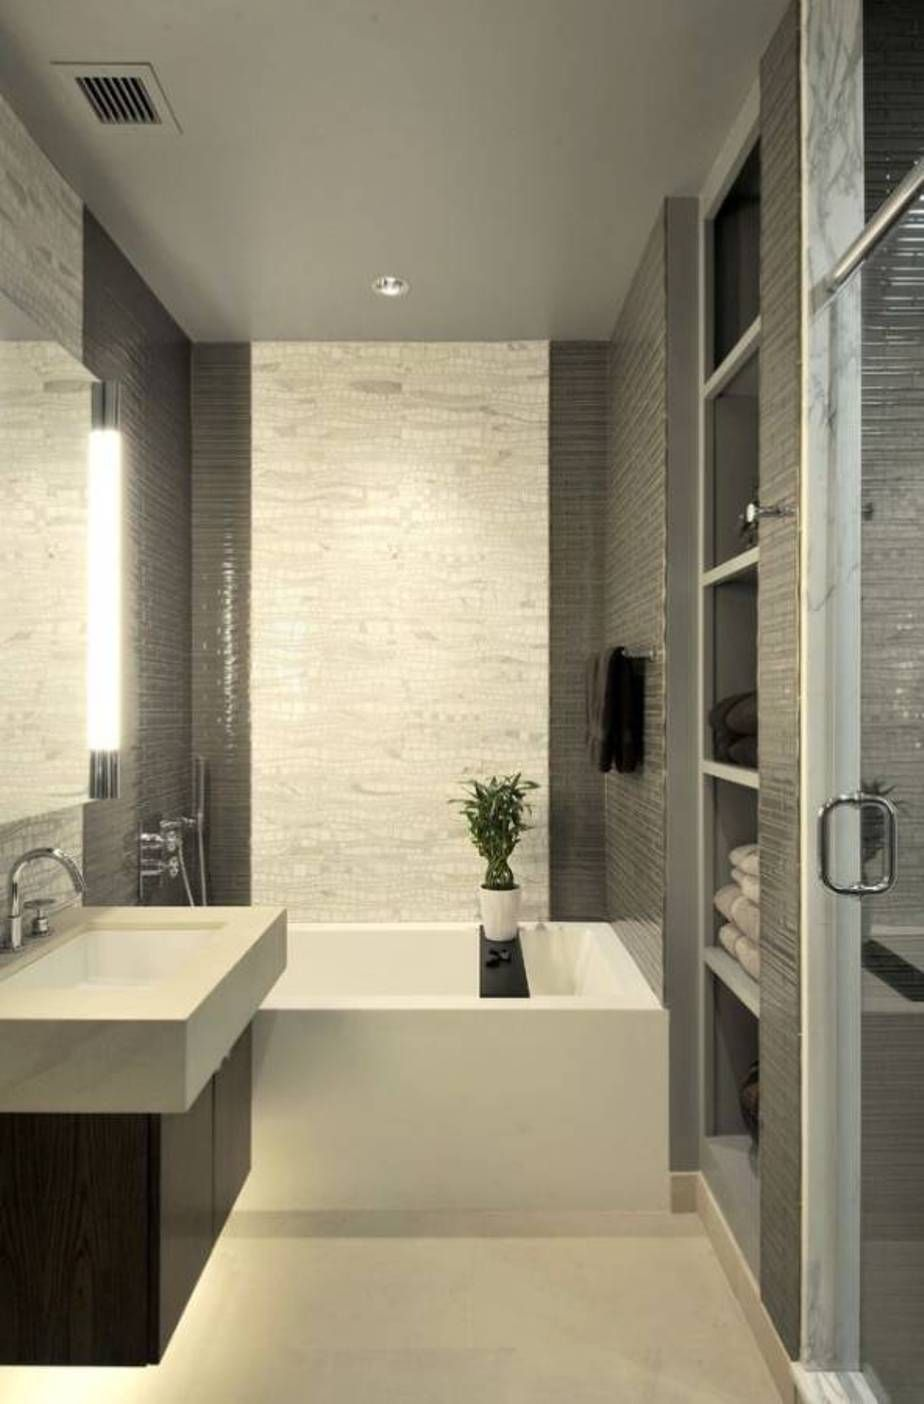 Bathroom modern small bathroom design ideas modern for Small bathroom design ideas with tub